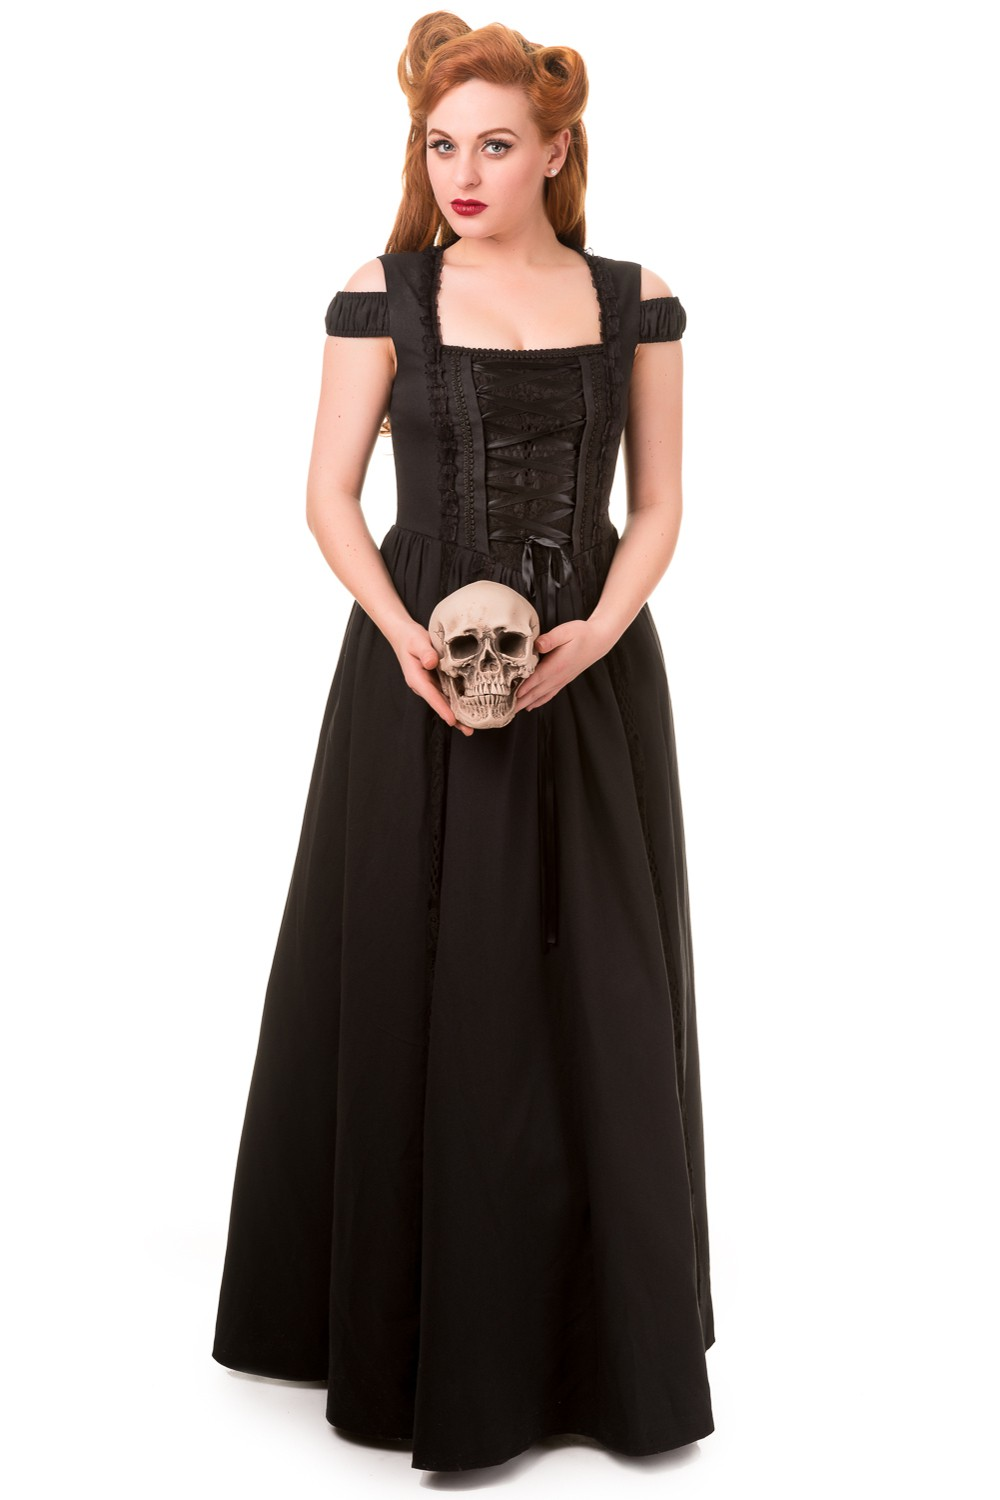 Banned Daysleeper Gothic Maxi Prom Dress